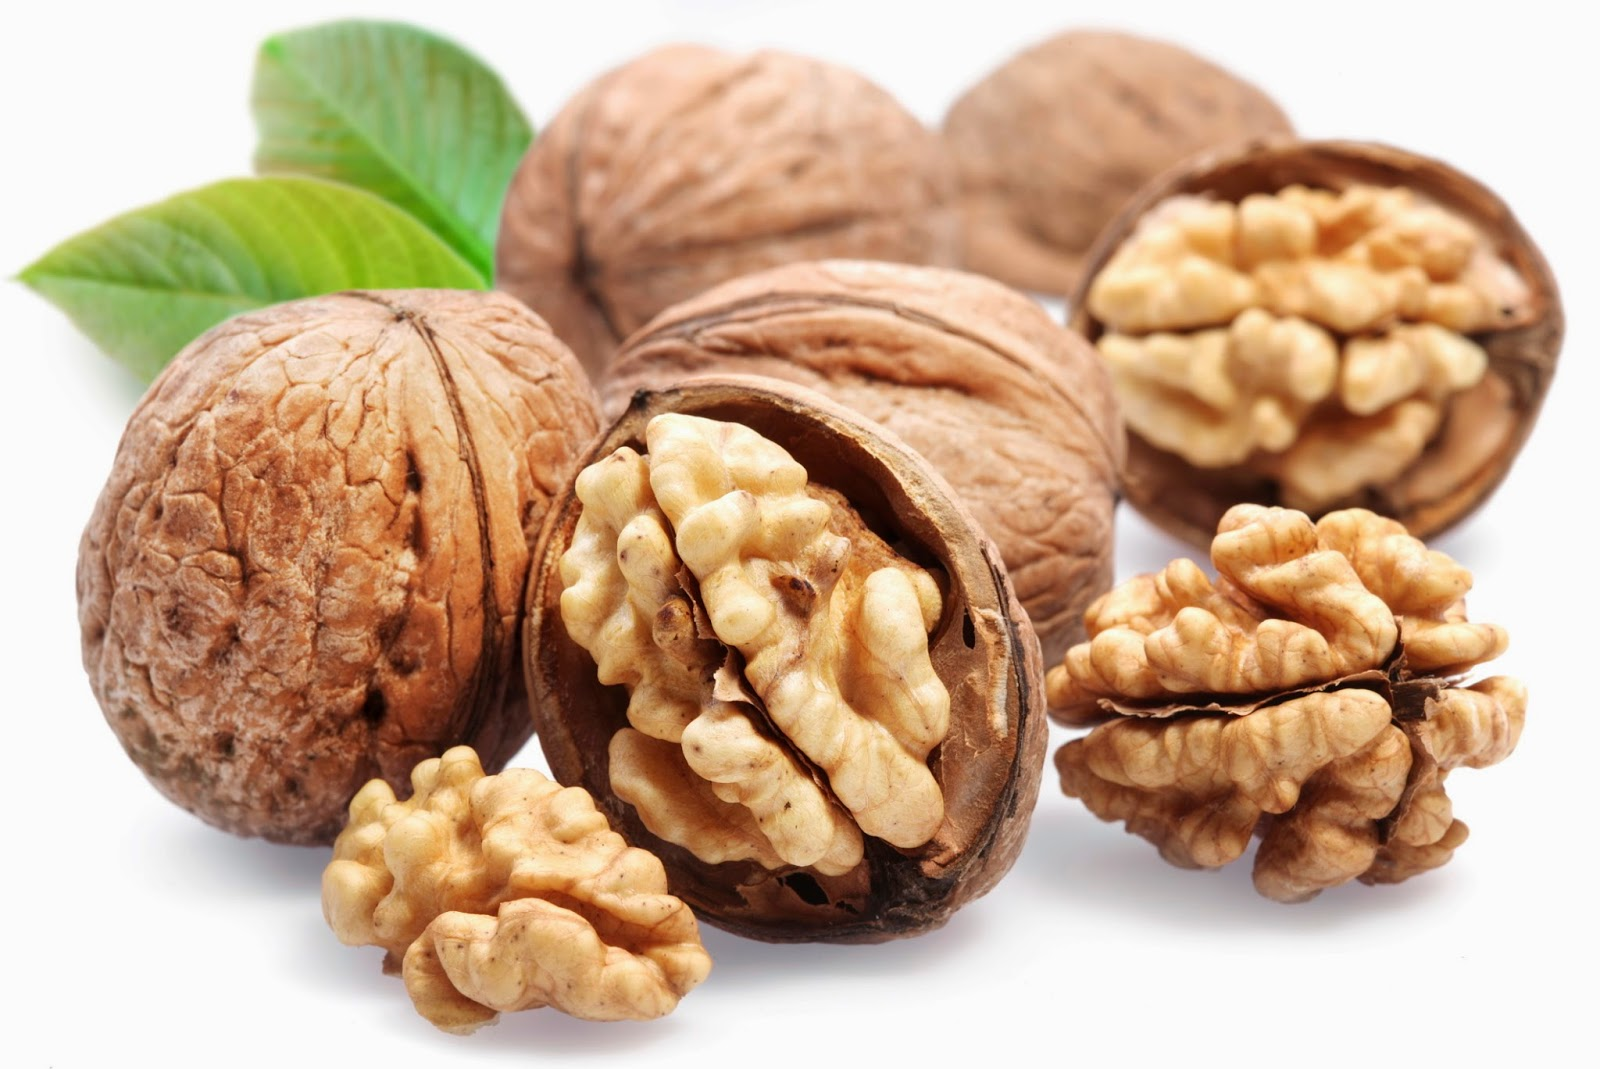 nutritional demerits of walnuts